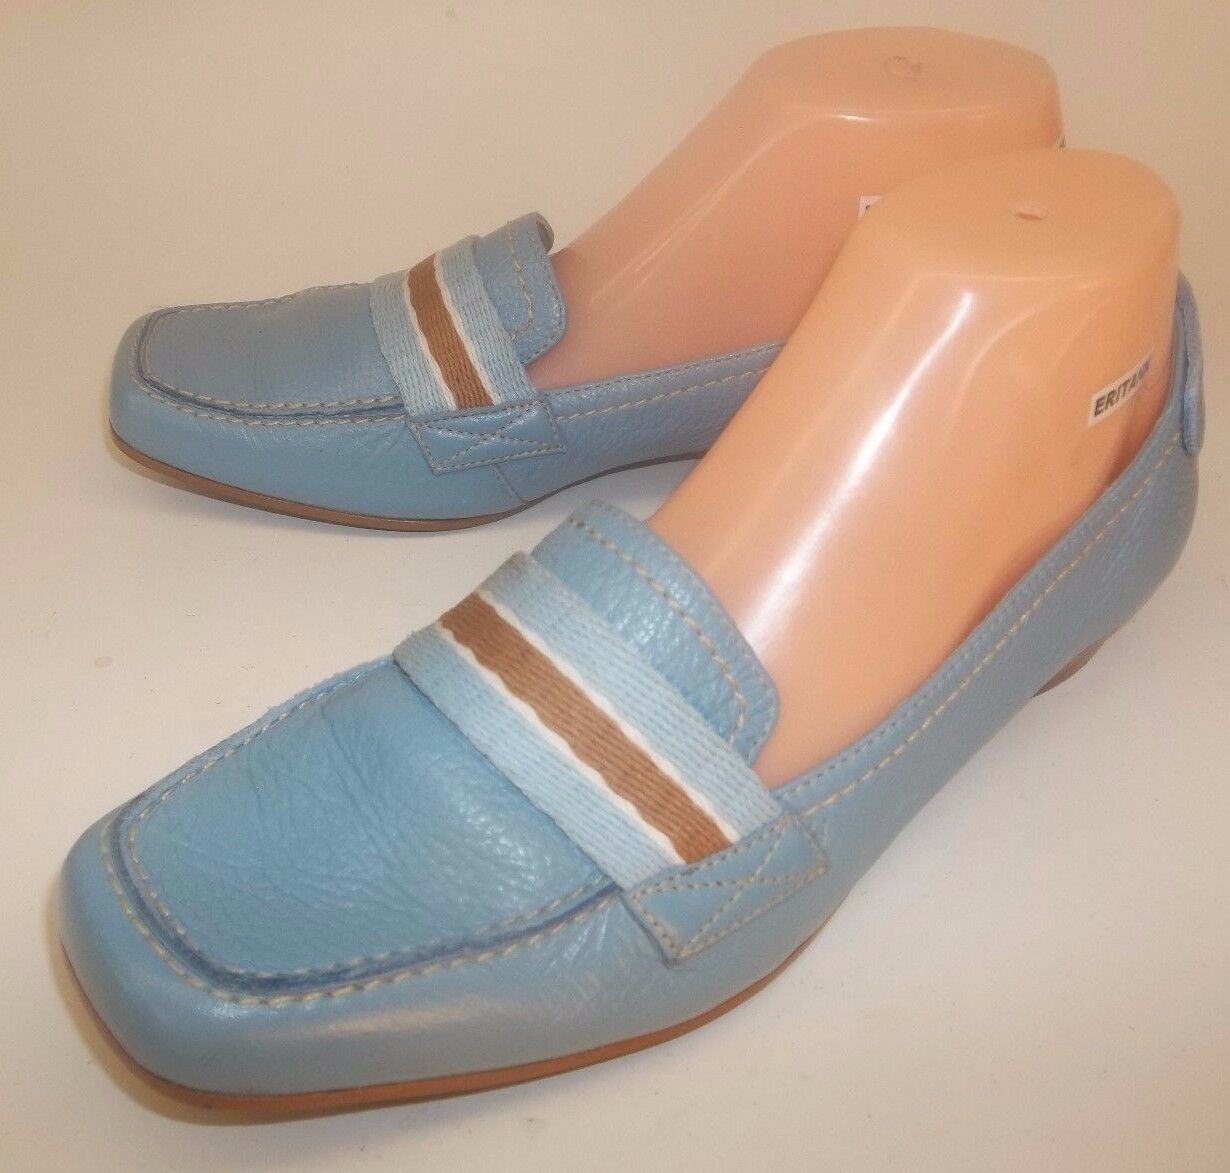 Connie Wos Loafer shoes CLEARWATER US 8.5 M bluee Leather Slip-On Moc Toe Work